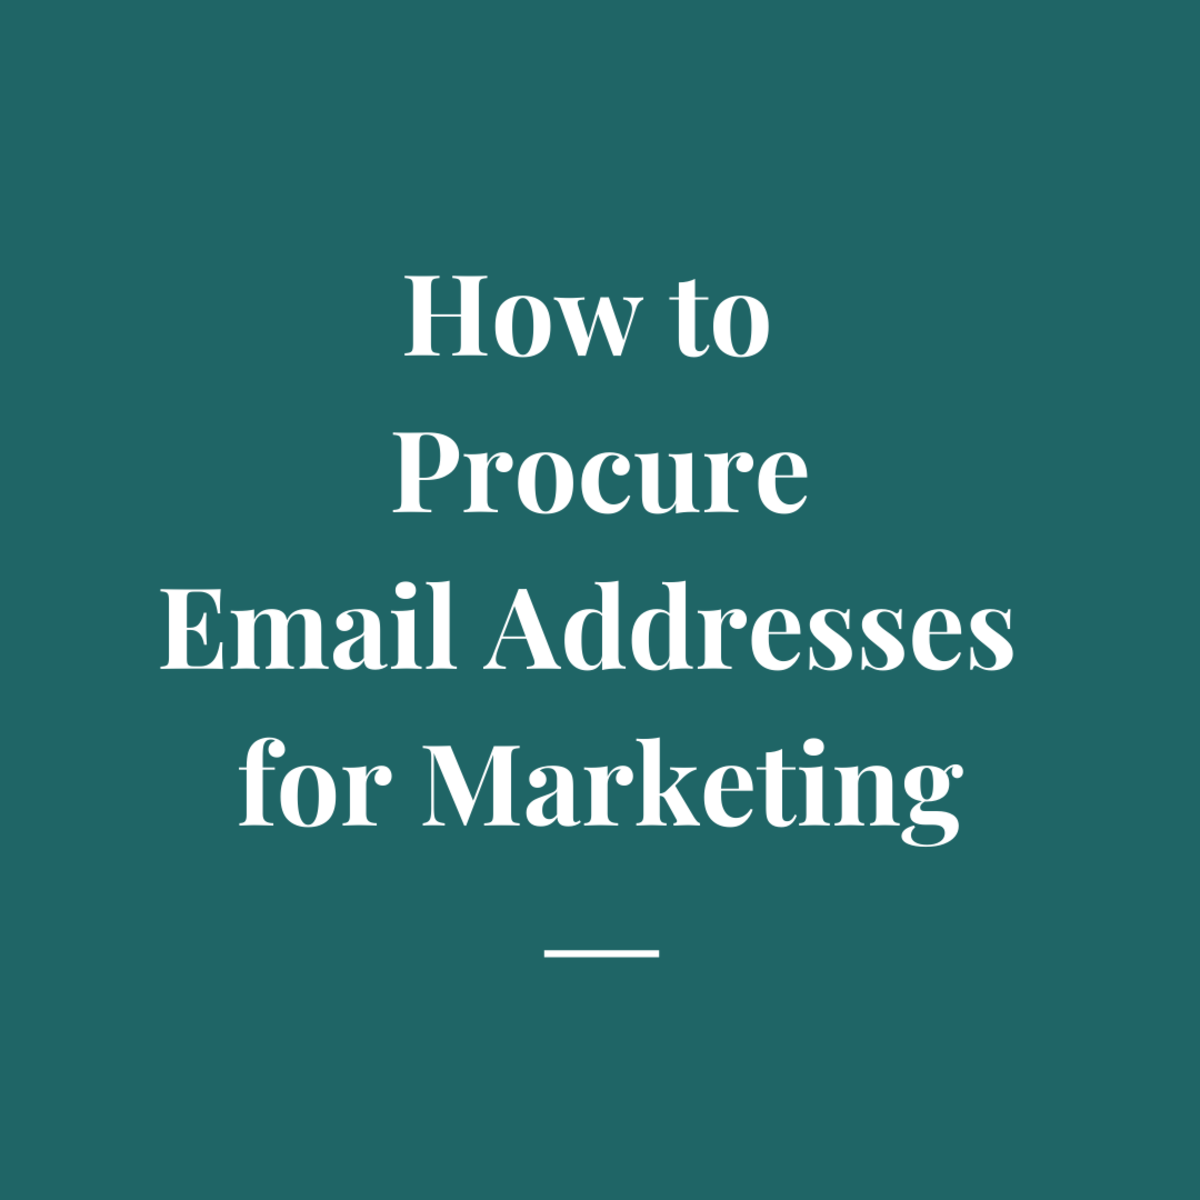 Learn how to procure email addresses legitimately.